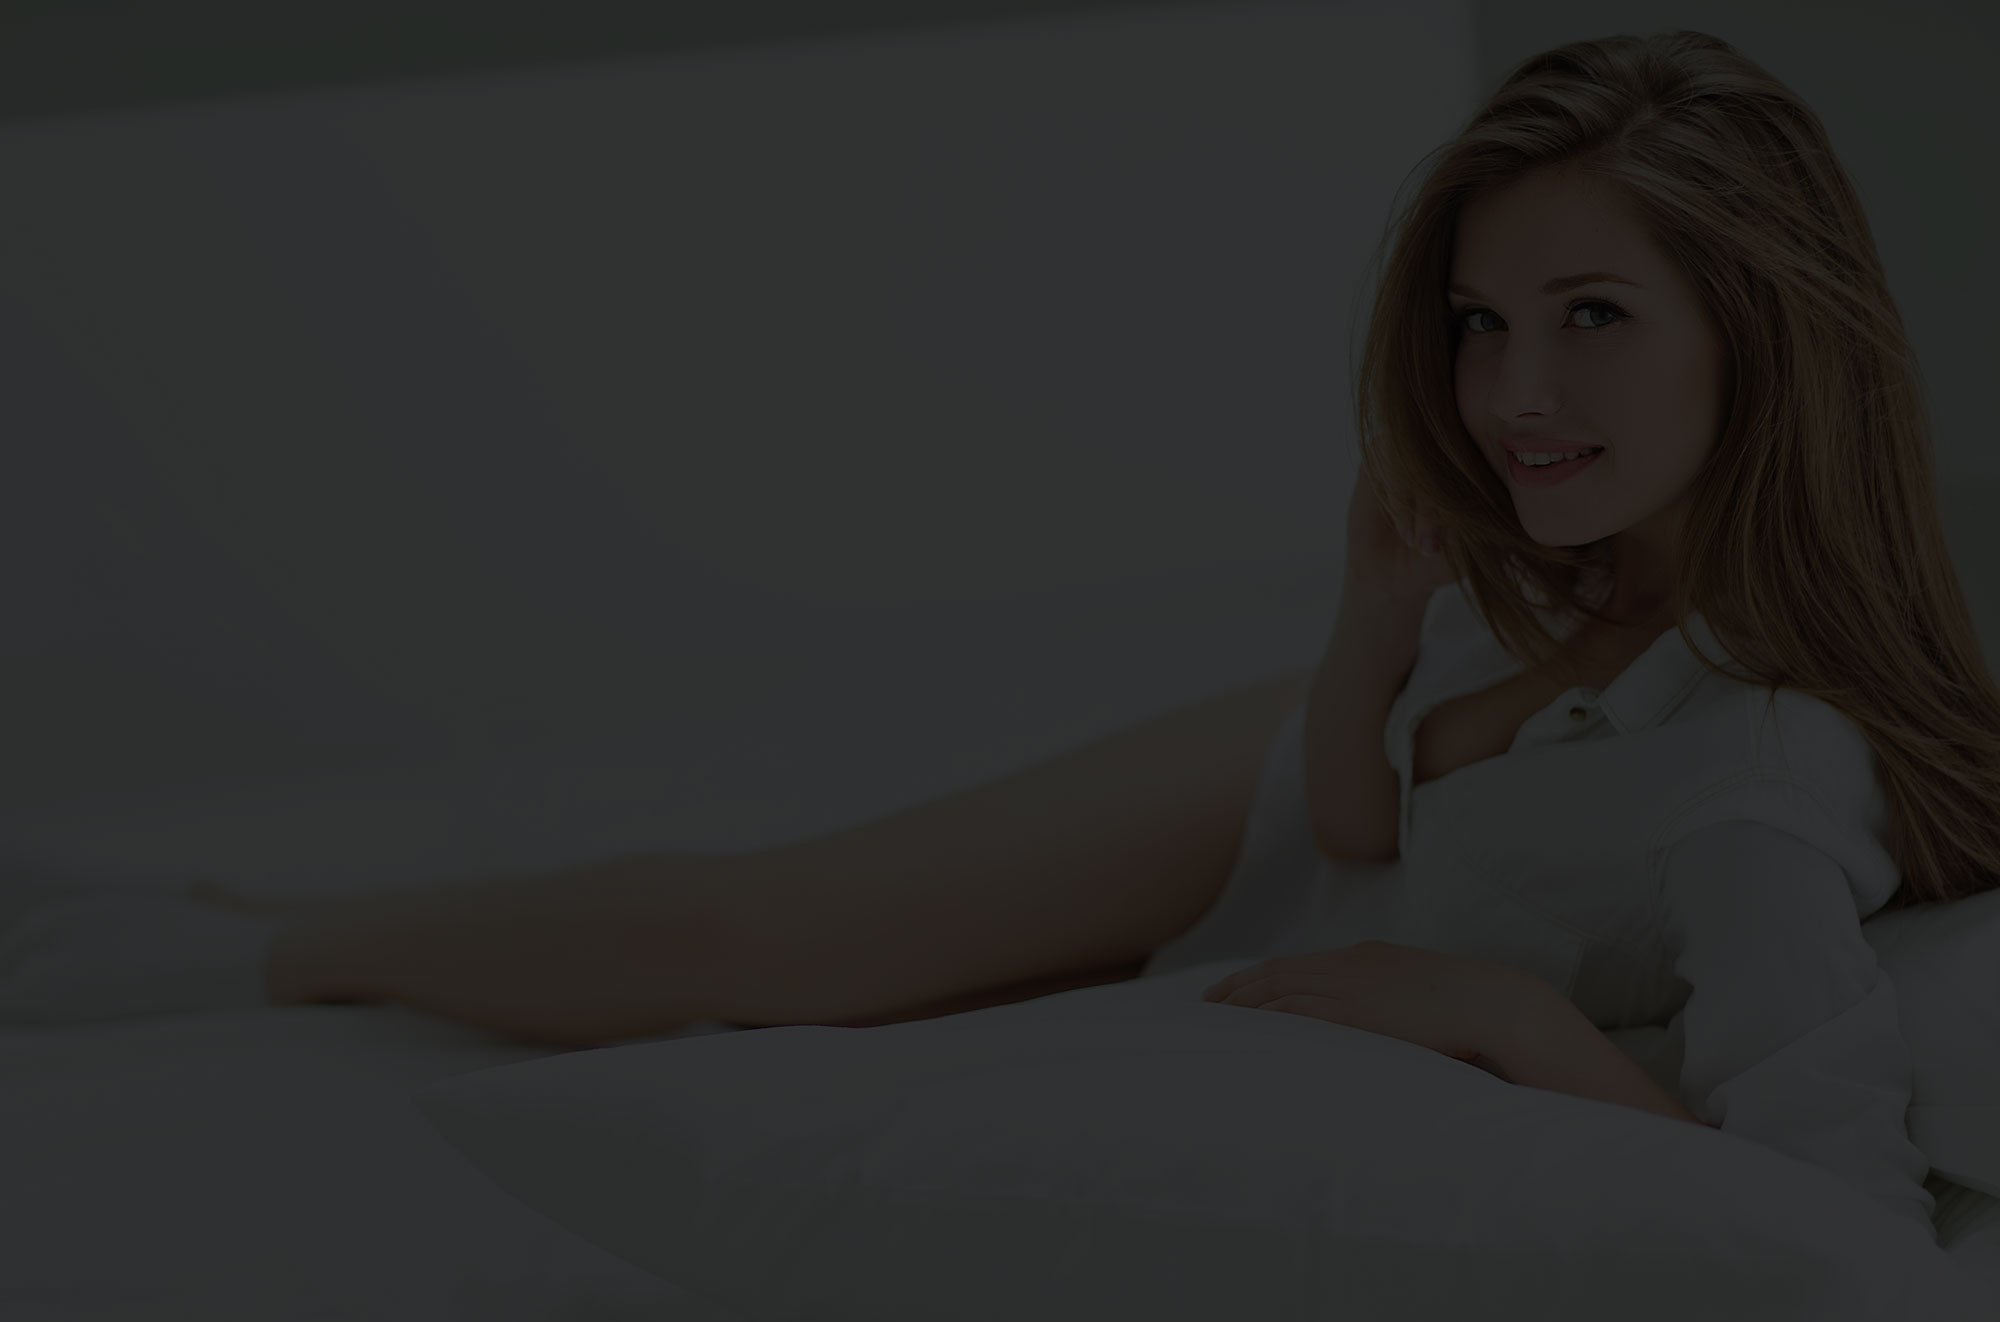 Woman with long hair lying on side in bed.